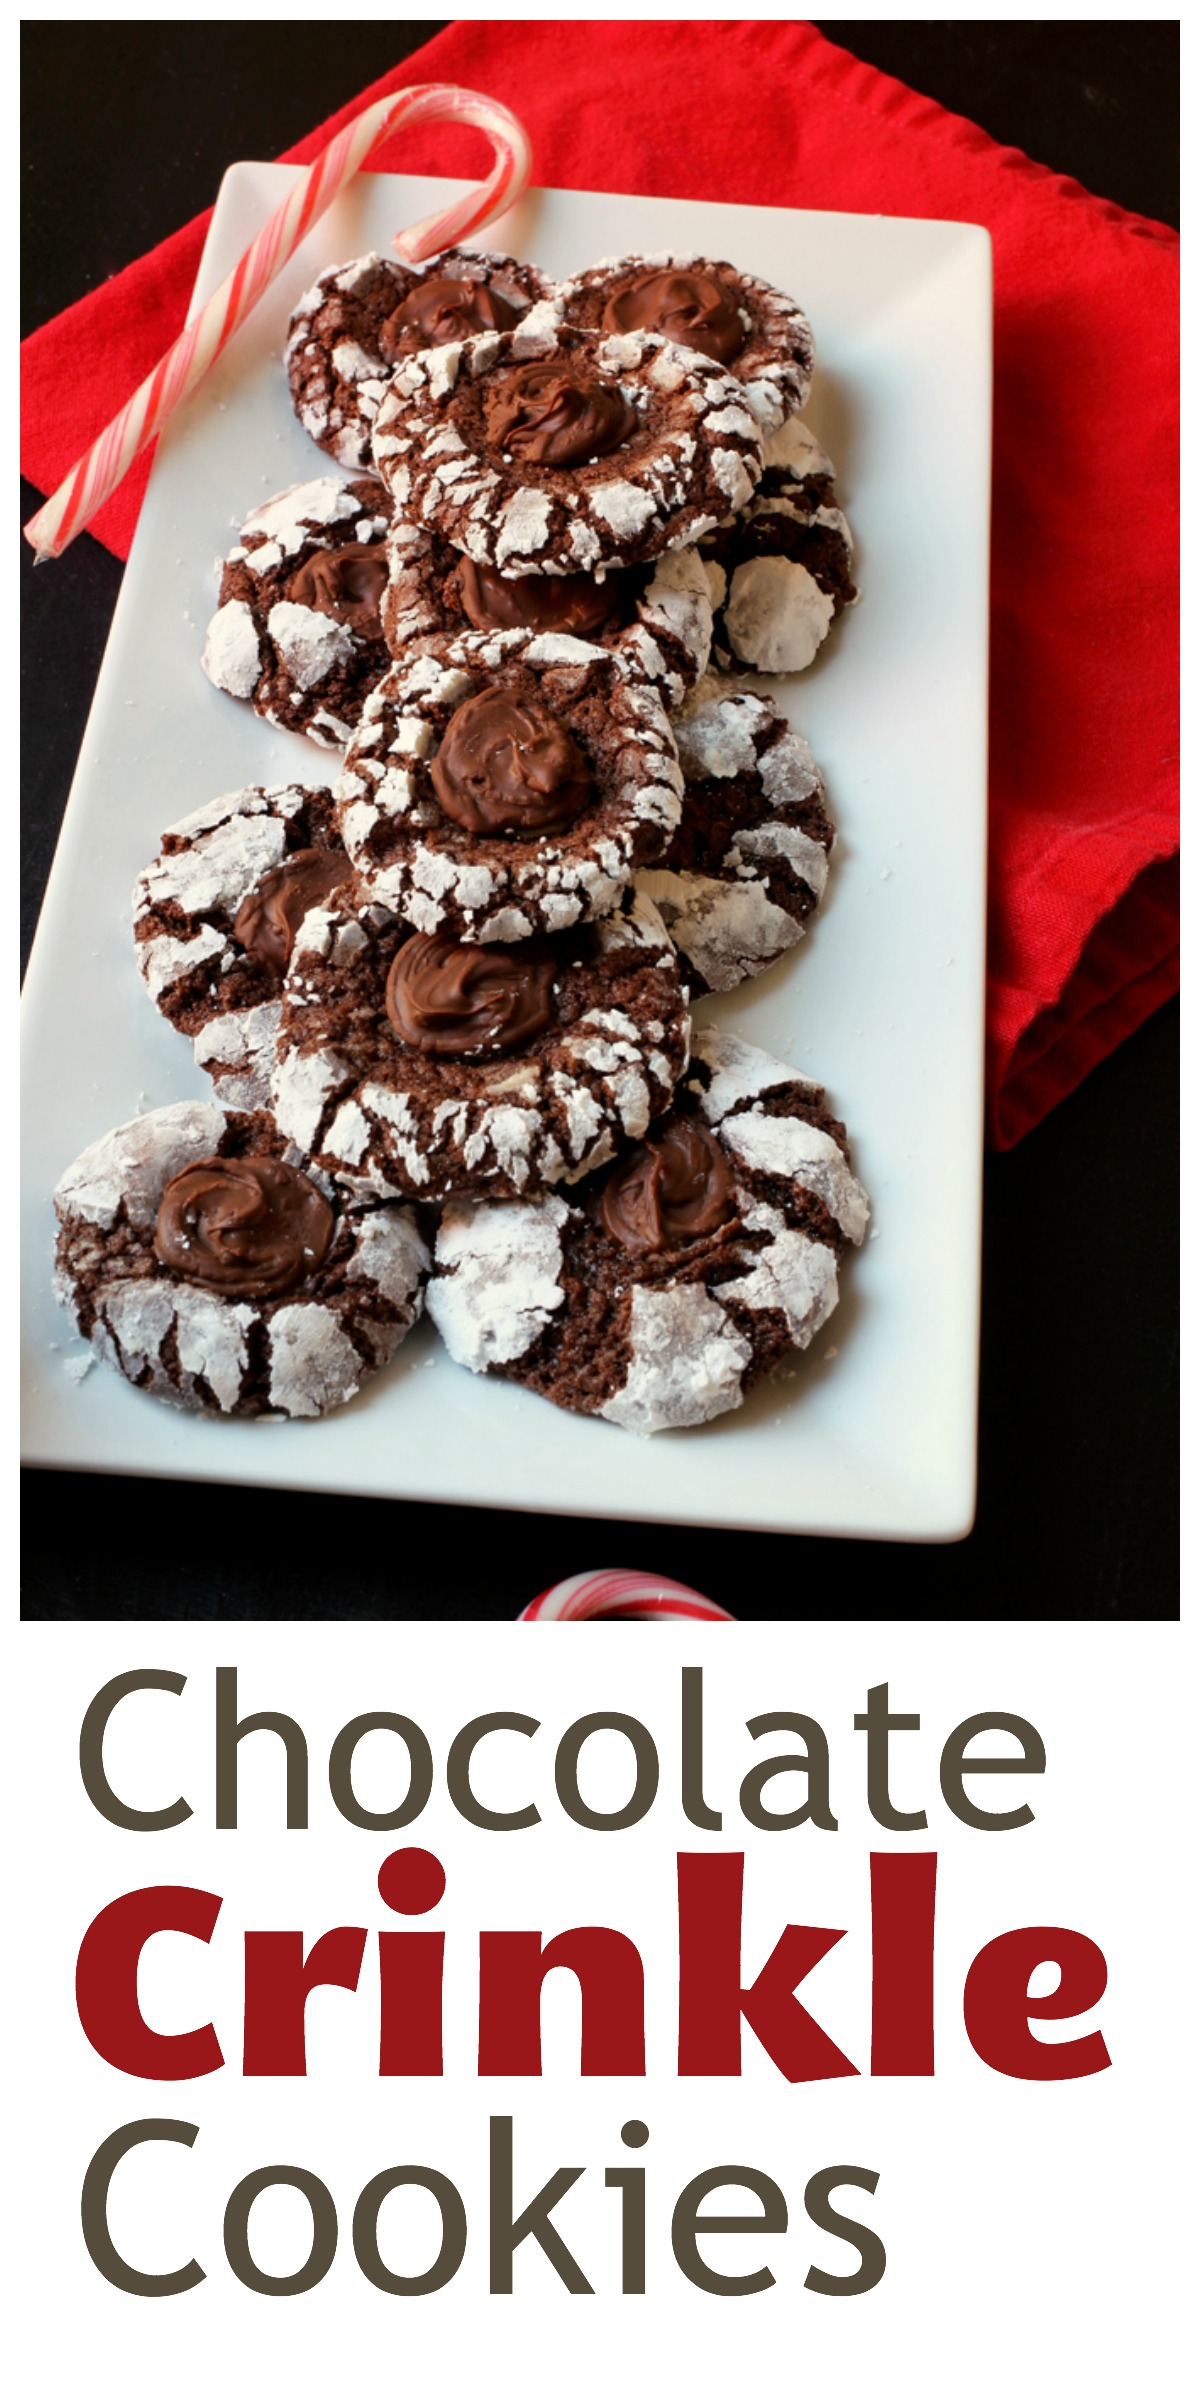 Chocolate Crinkle Cookies | Life as Mom